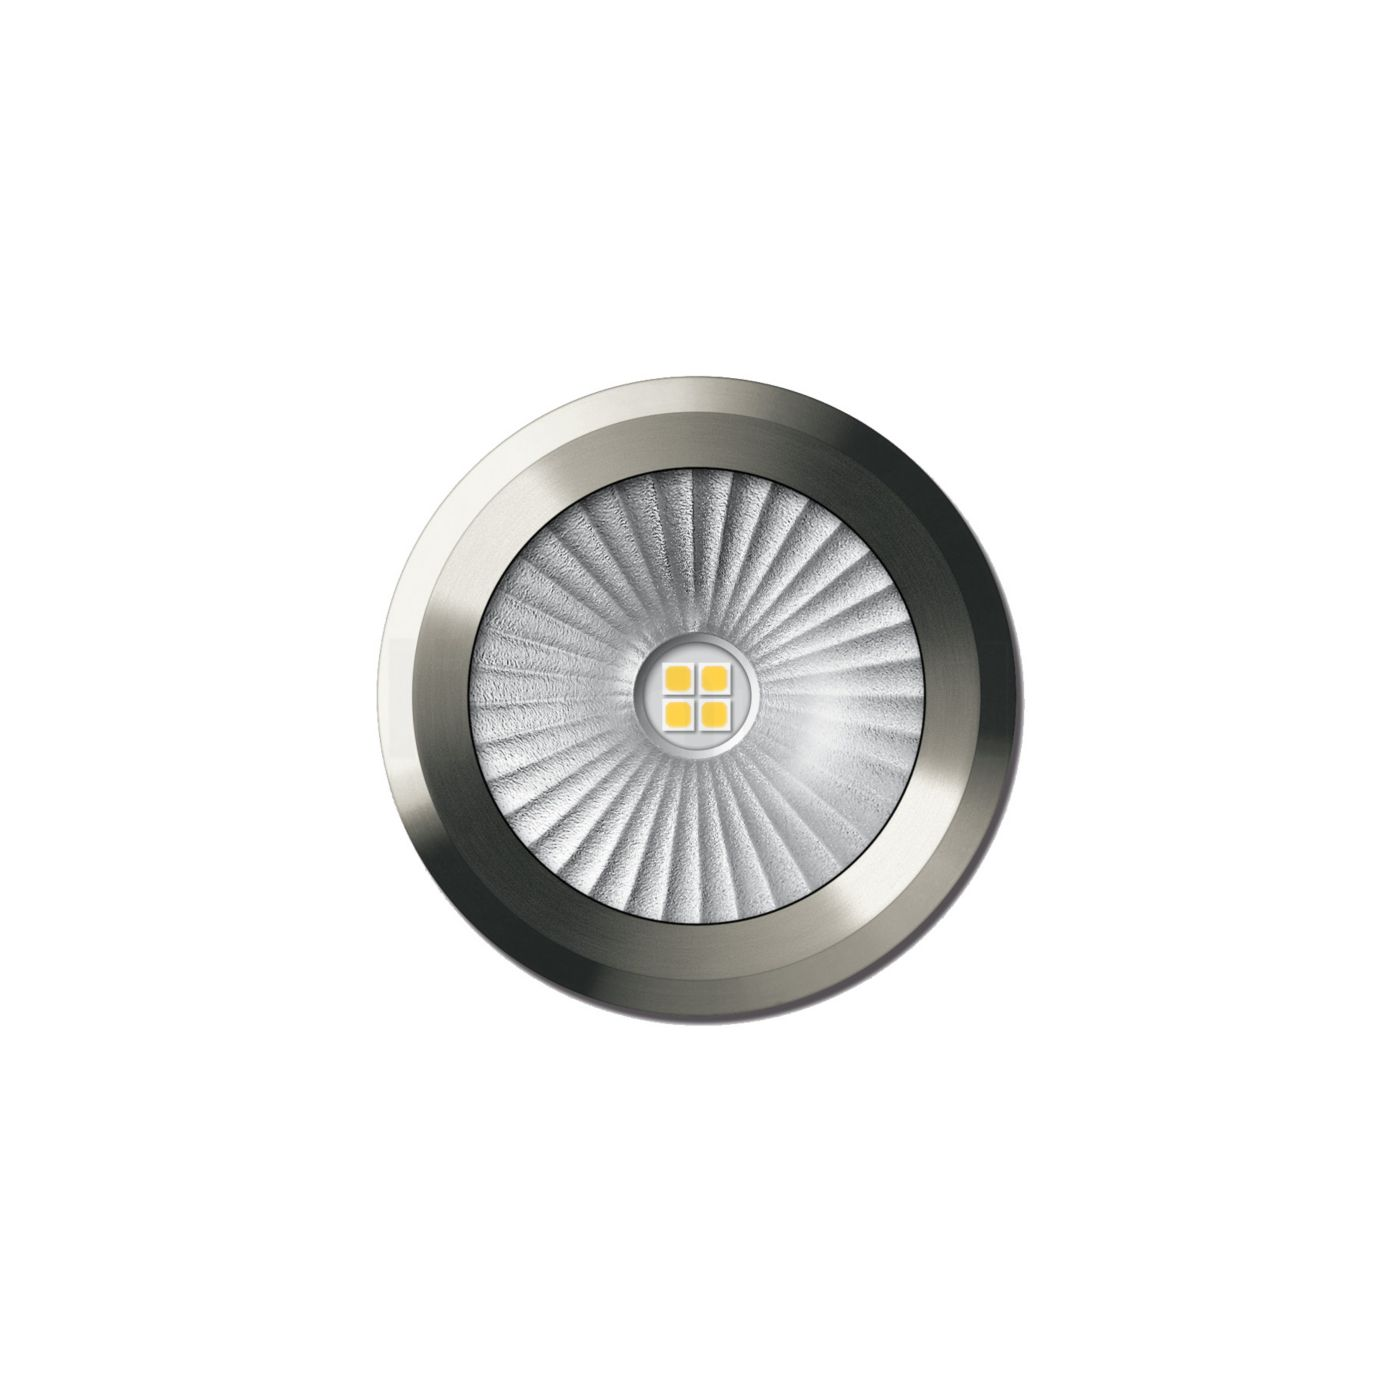 Bega 33832 recessed wall light led wall lights arubaitofo Image collections